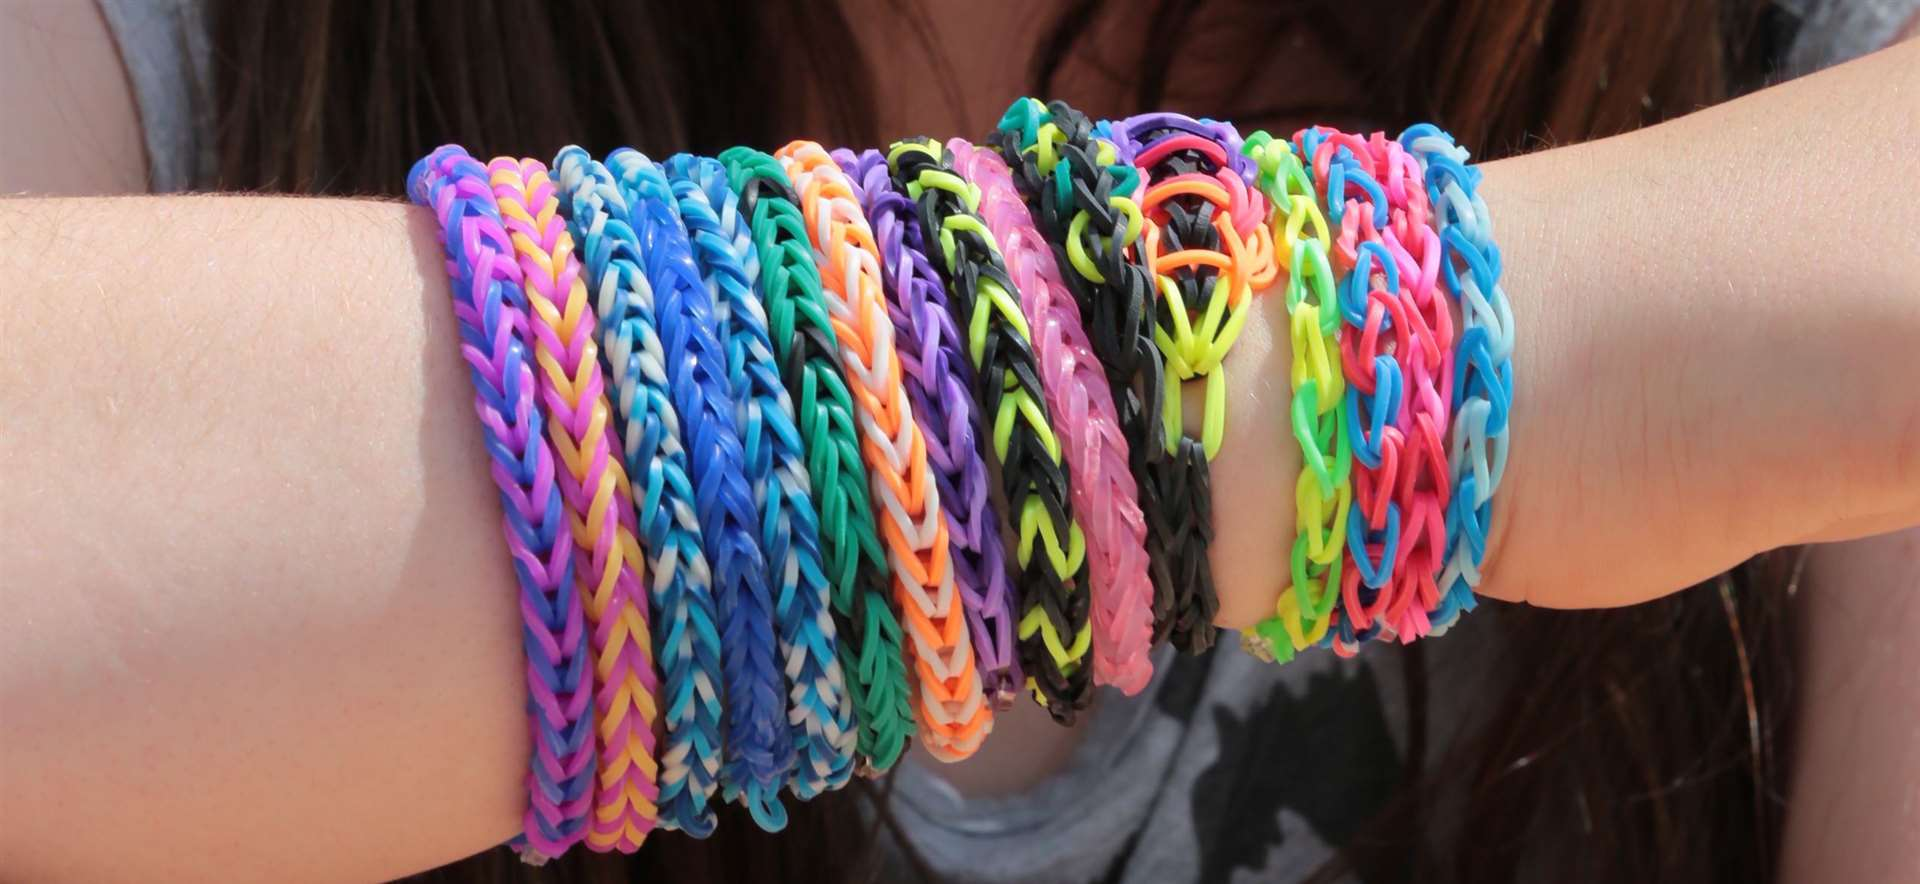 Loom bands used to make friendship bracelets were extremely popular five to seven years ago